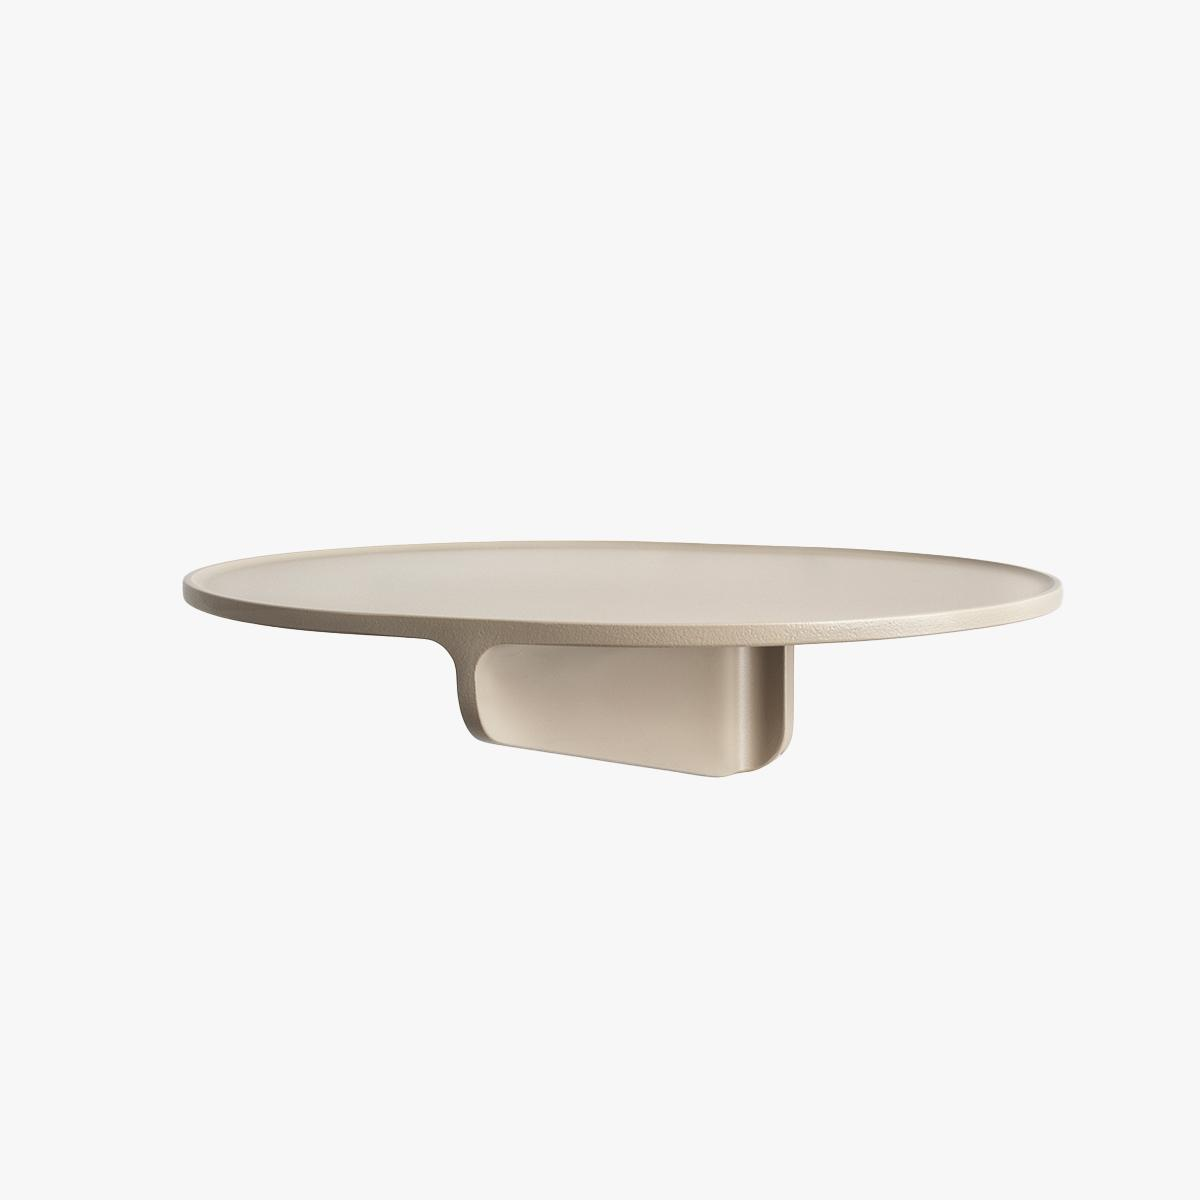 string-museum-shelf-beige-1200f7